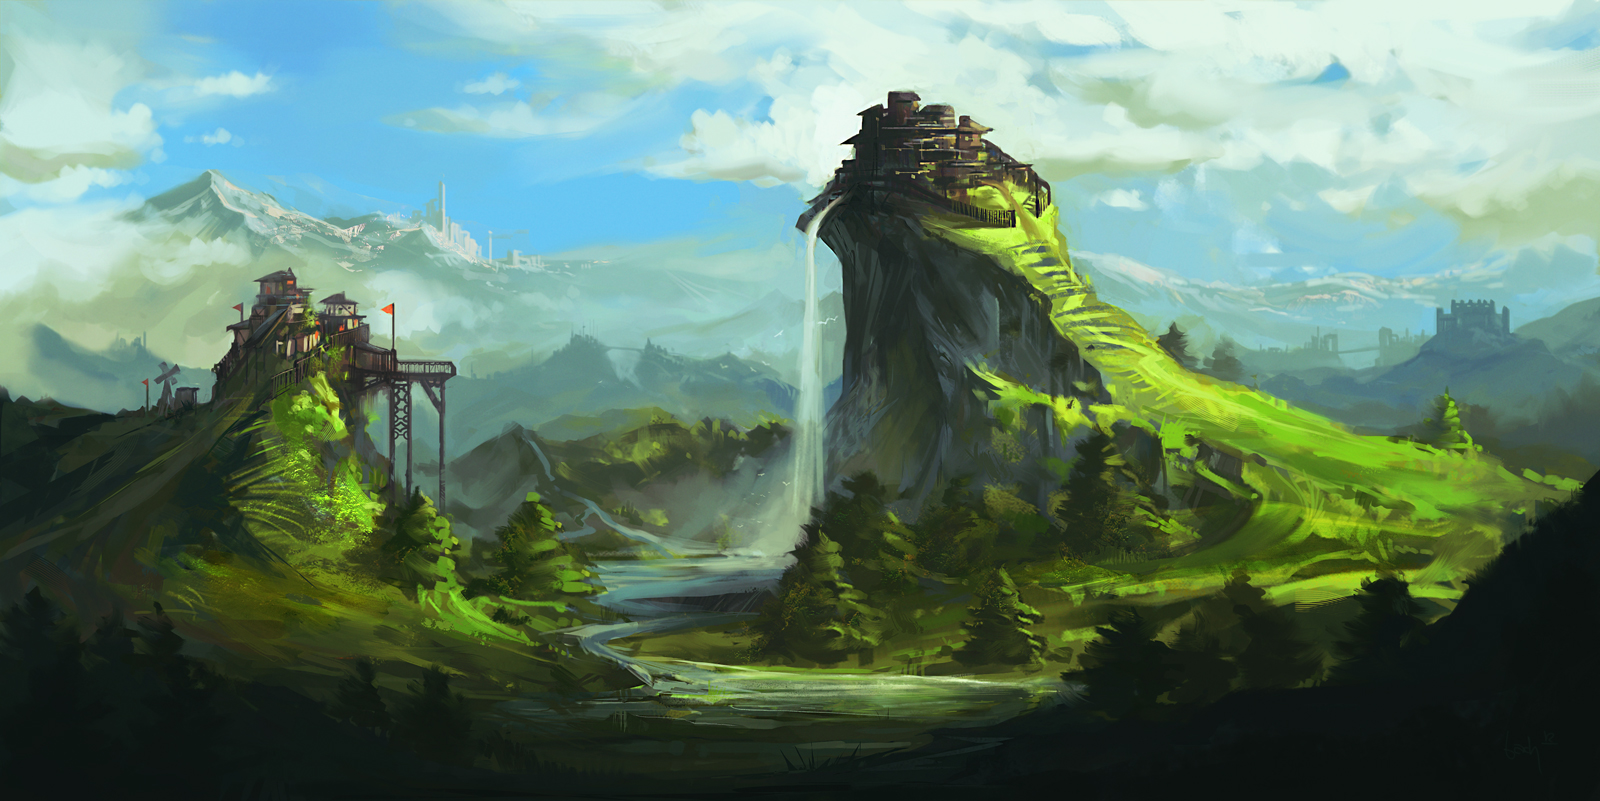 MMO background by bbach